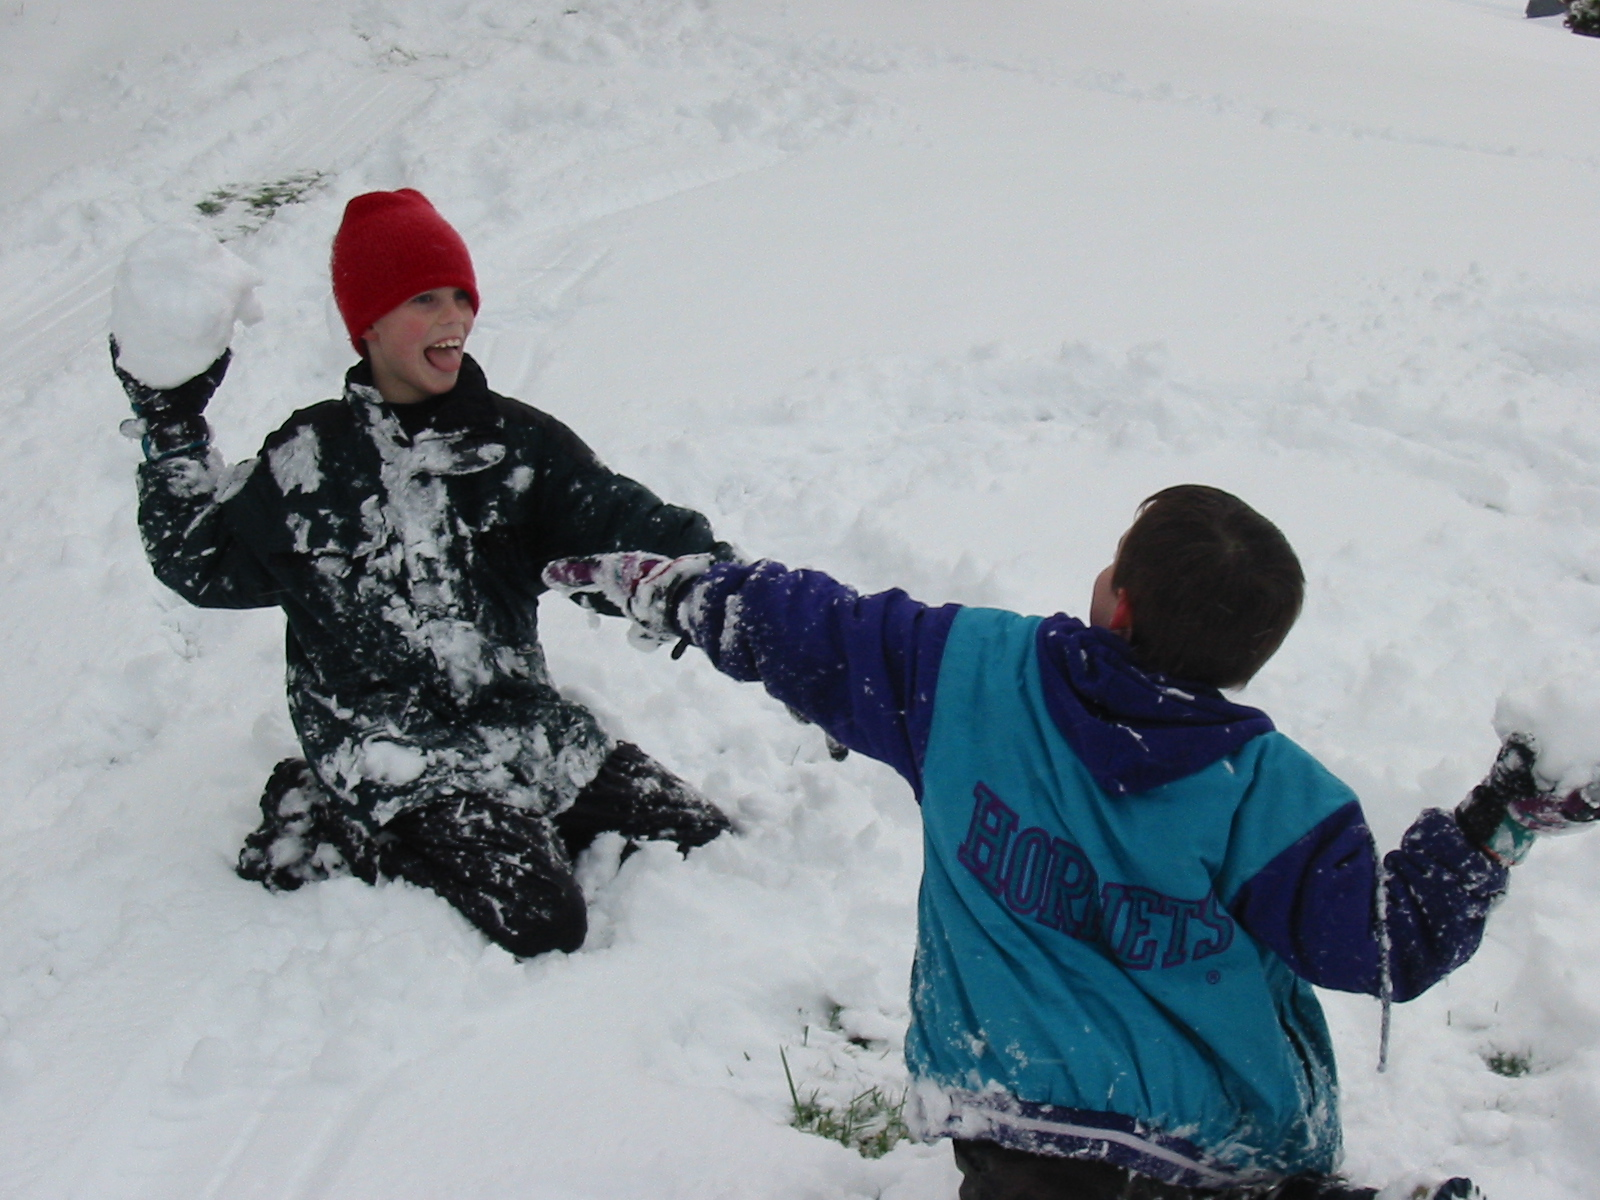 Stephen and his friend, Taylor, throwing snowballs.